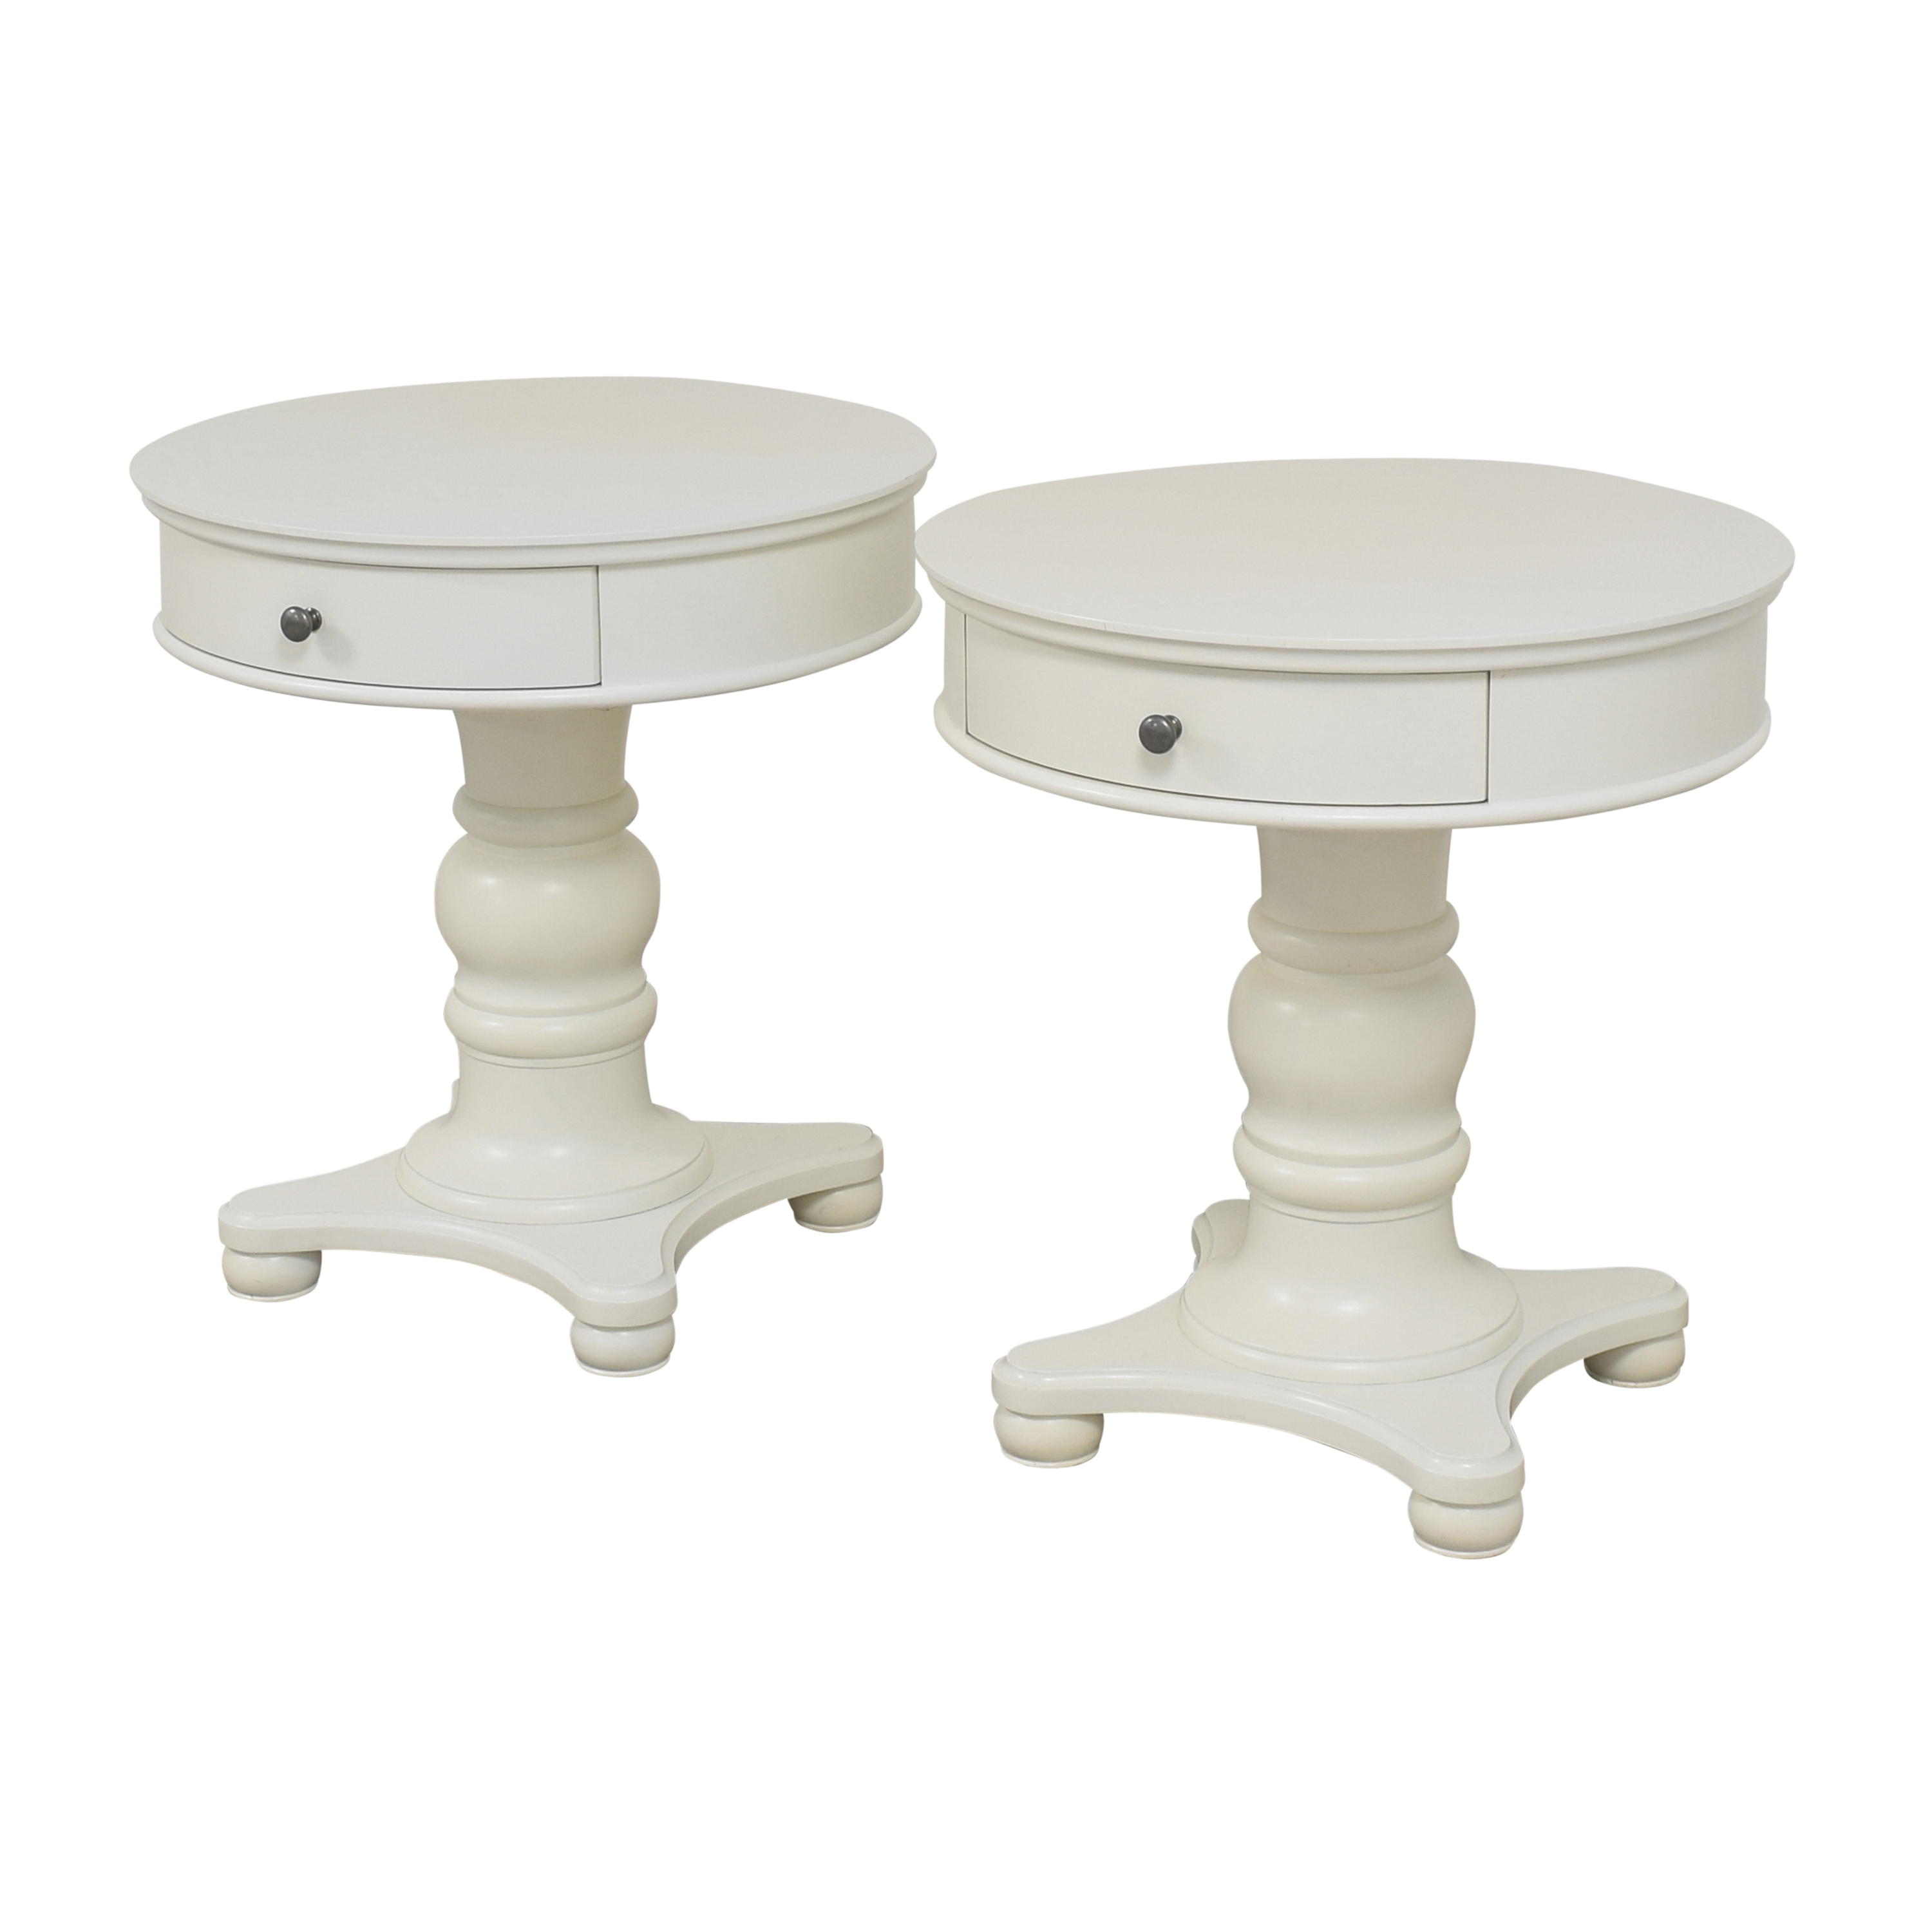 Pottery Barn Francisco End Tables / Tables